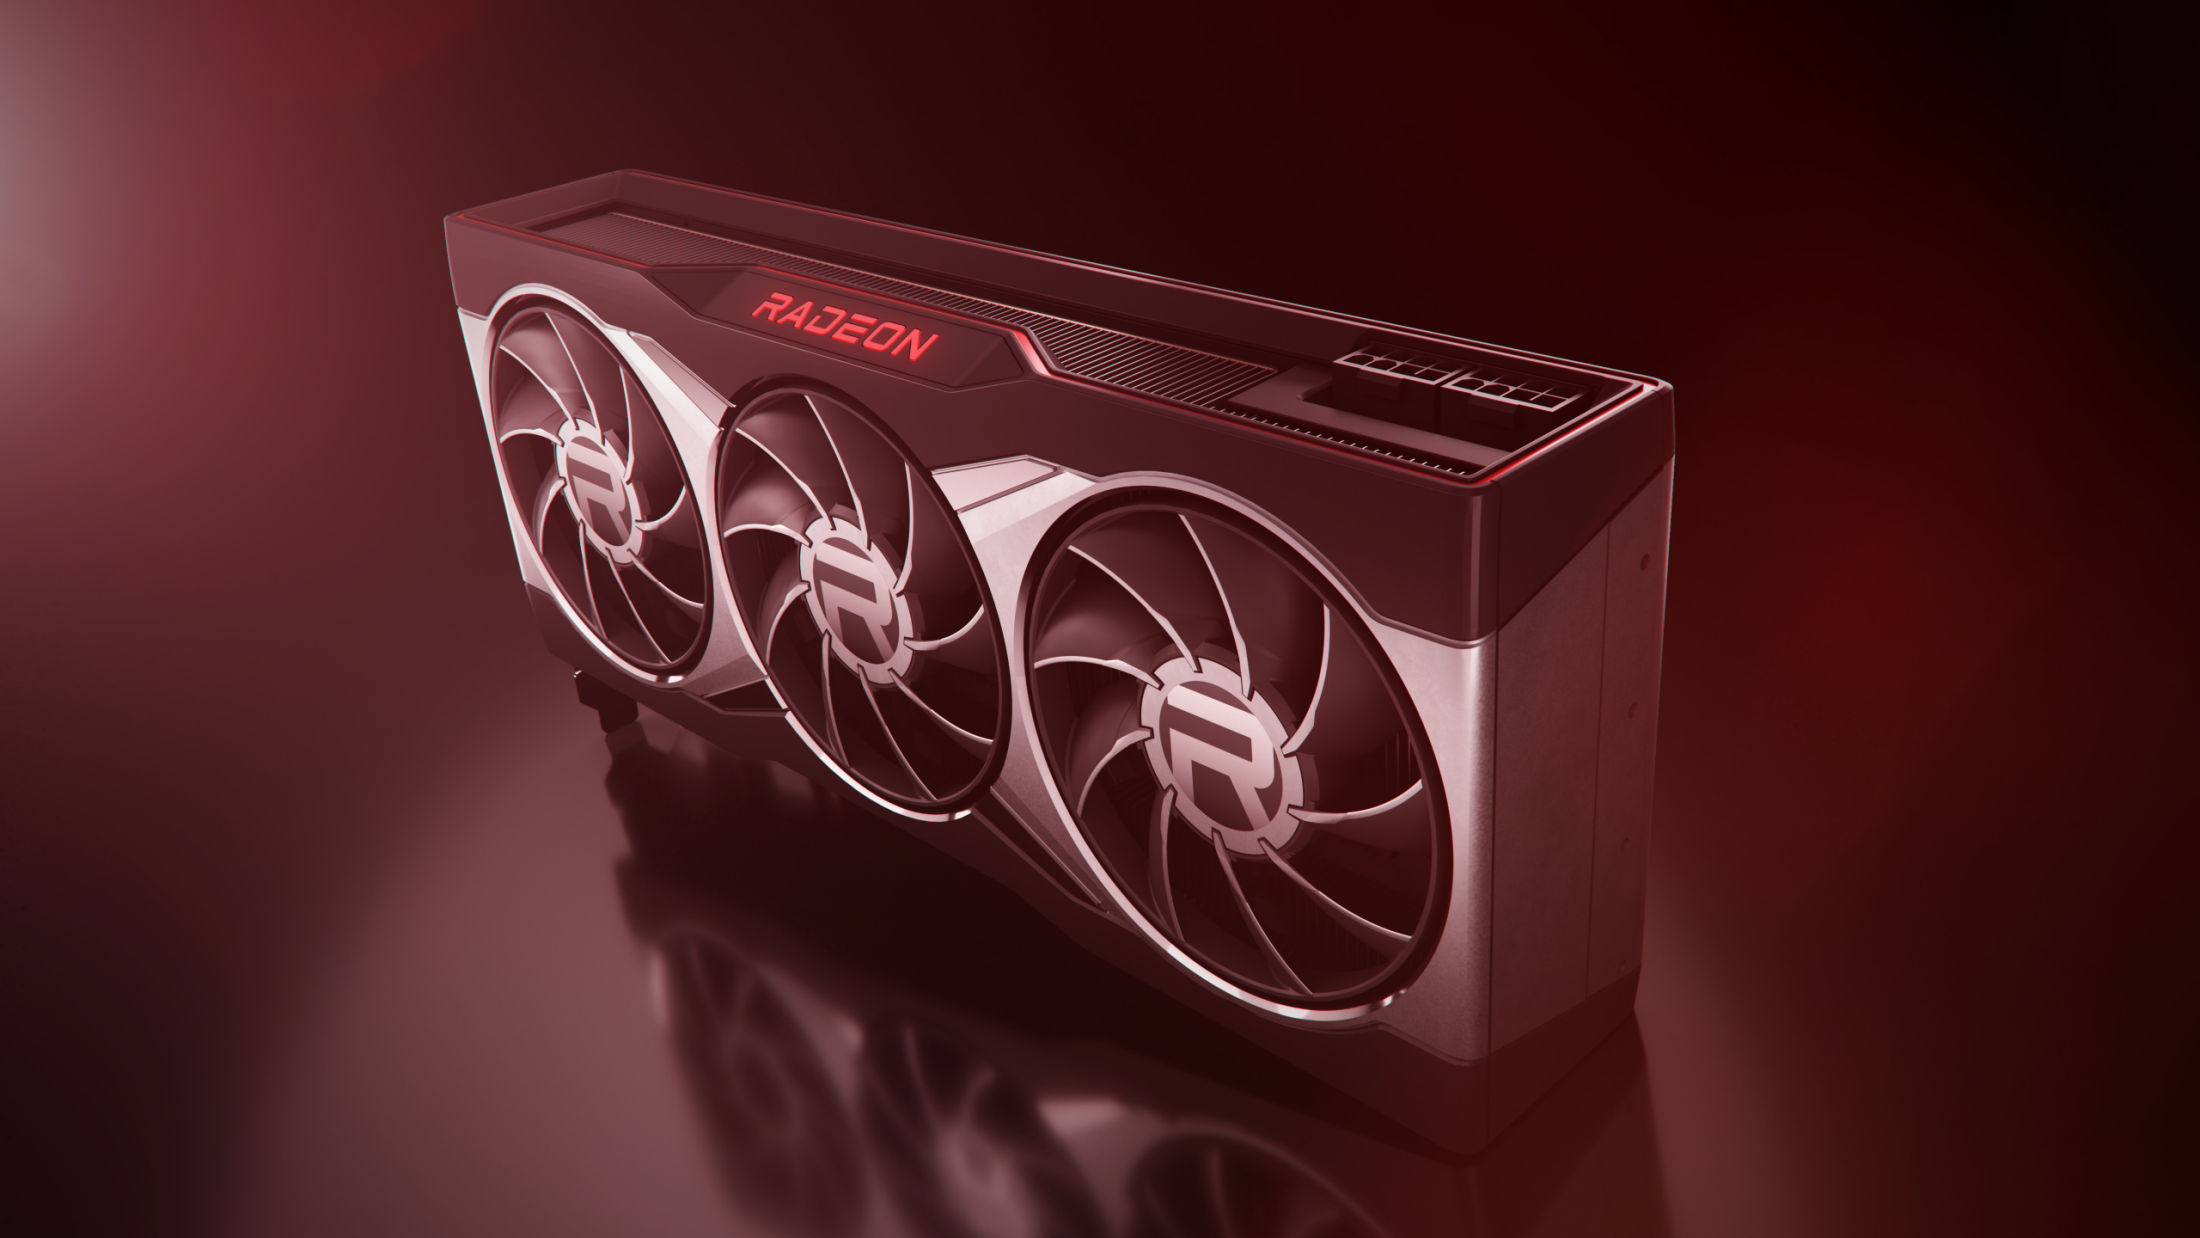 AMD launches Radeon RX 6900 XT graphics card for 999 USD – VideoCardz.com